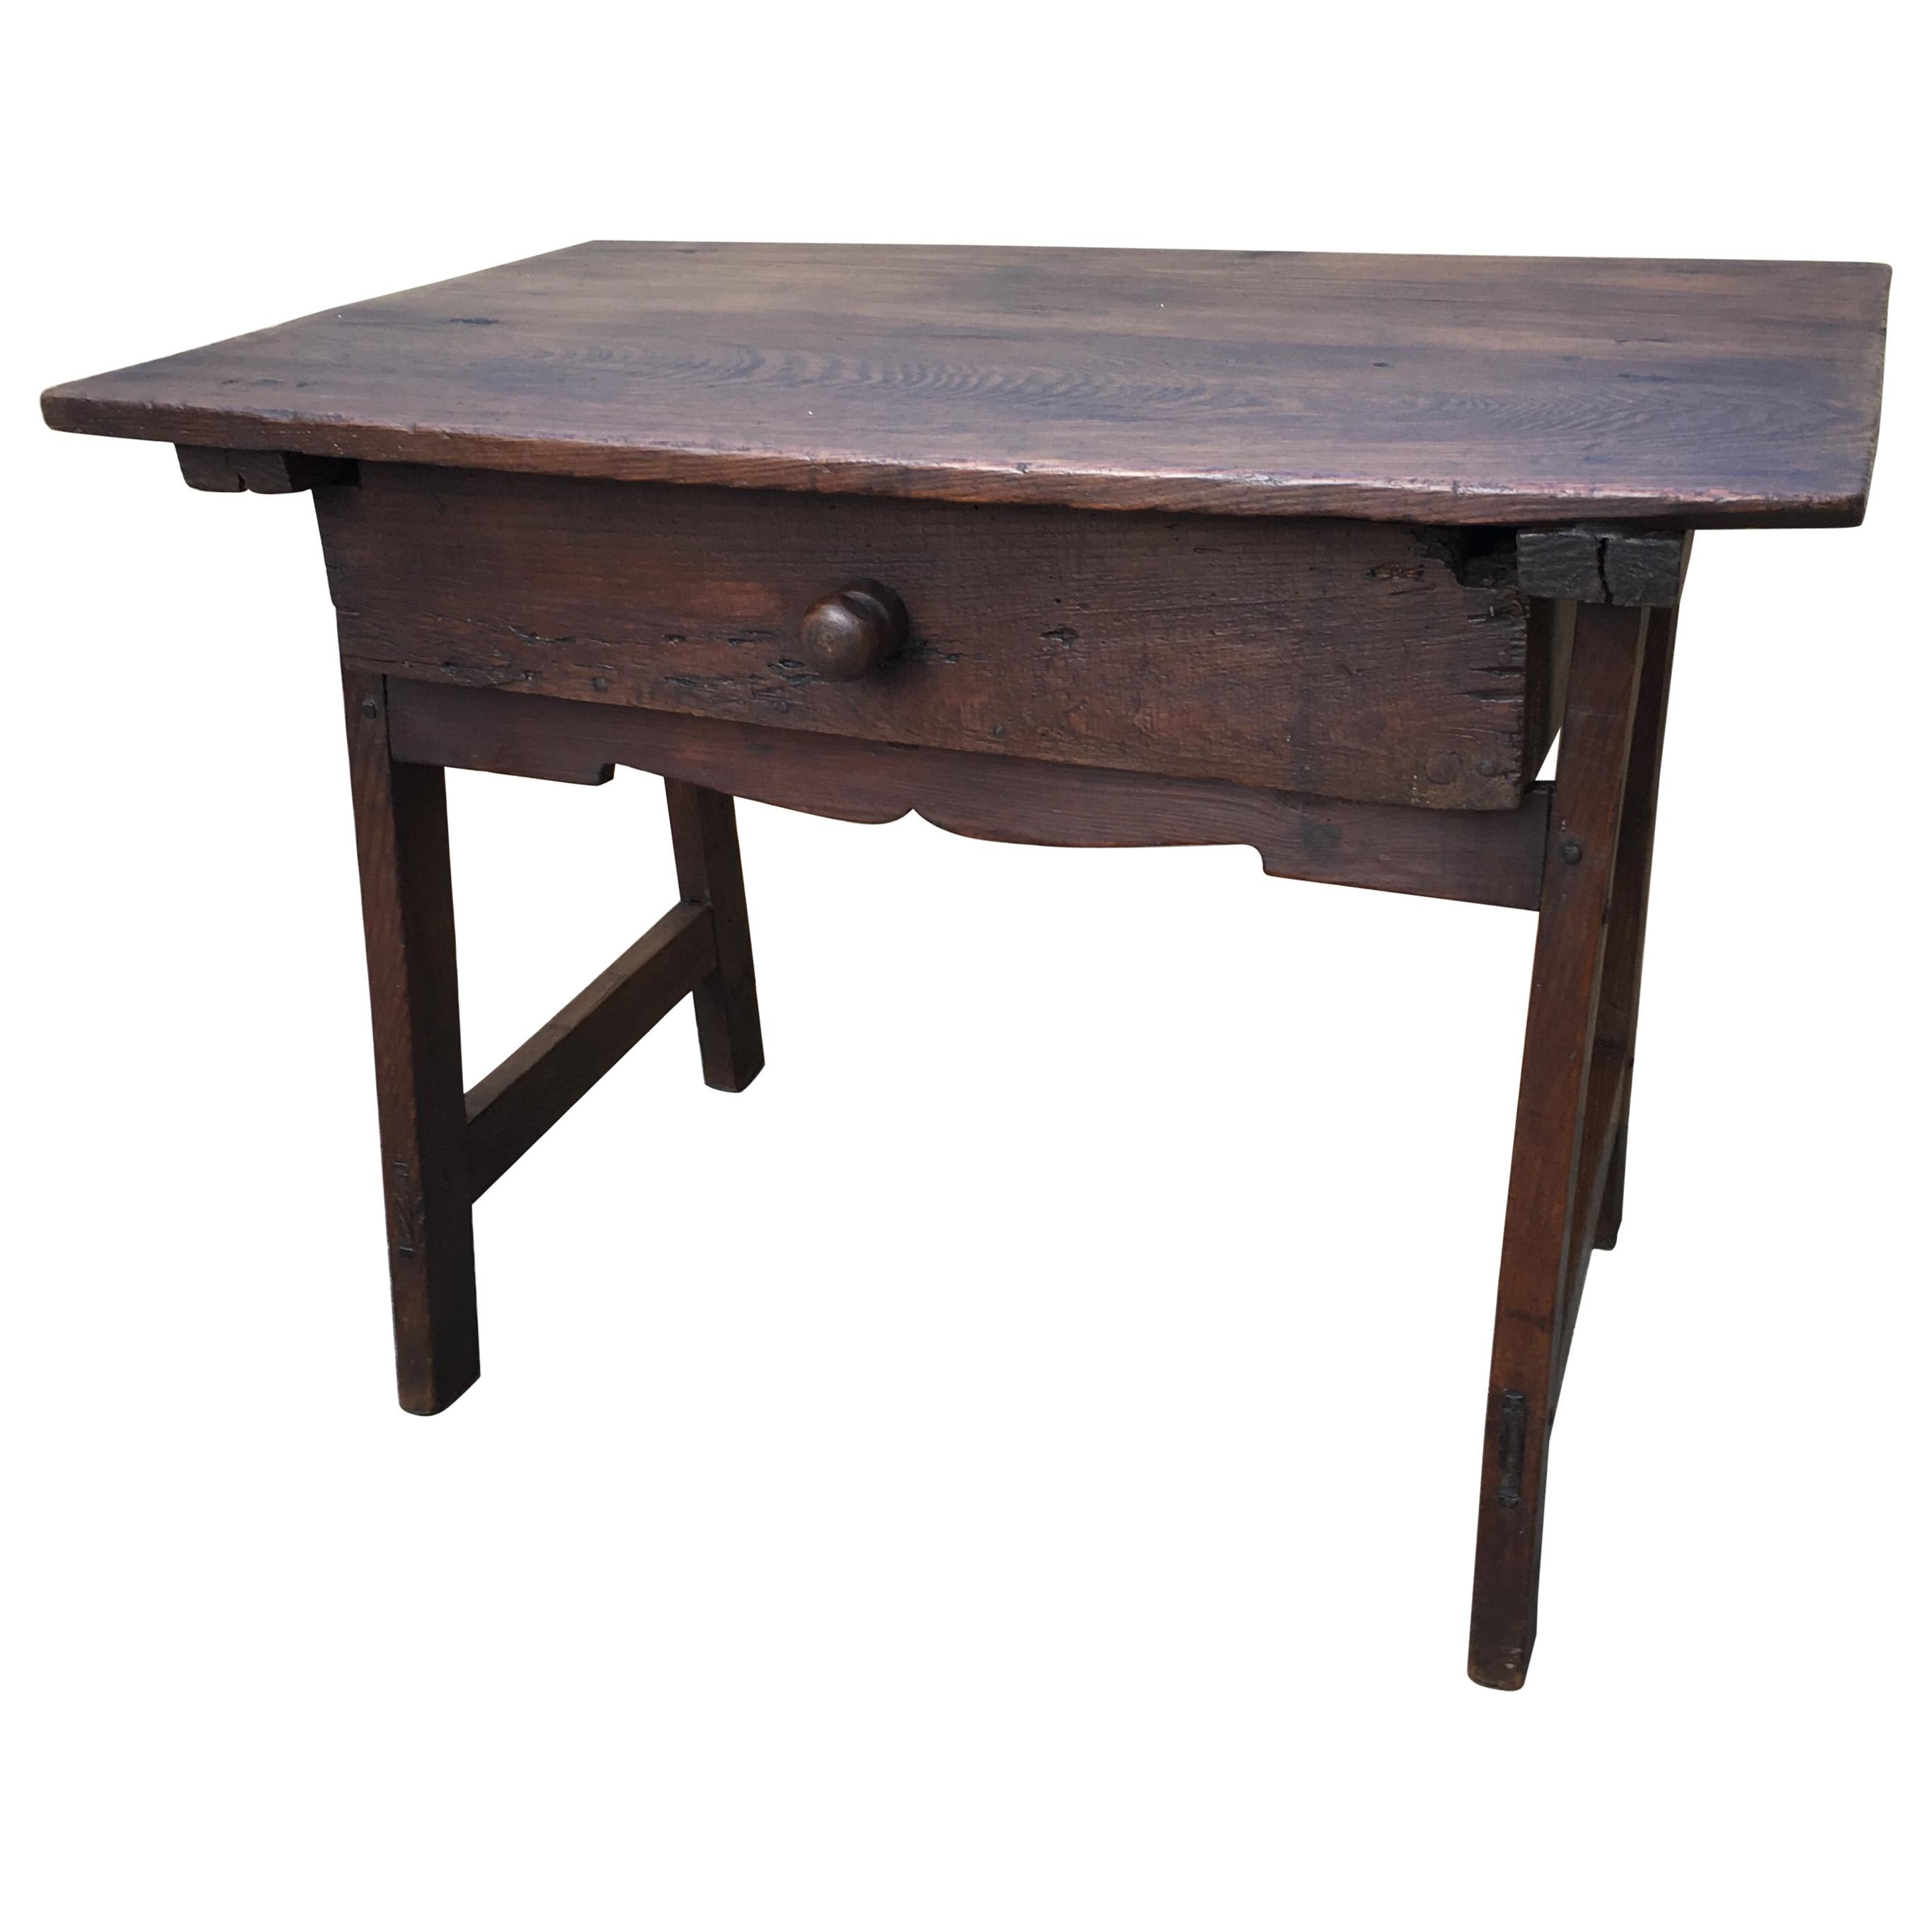 18th Century Rustic Spanish Side or Coffee Table